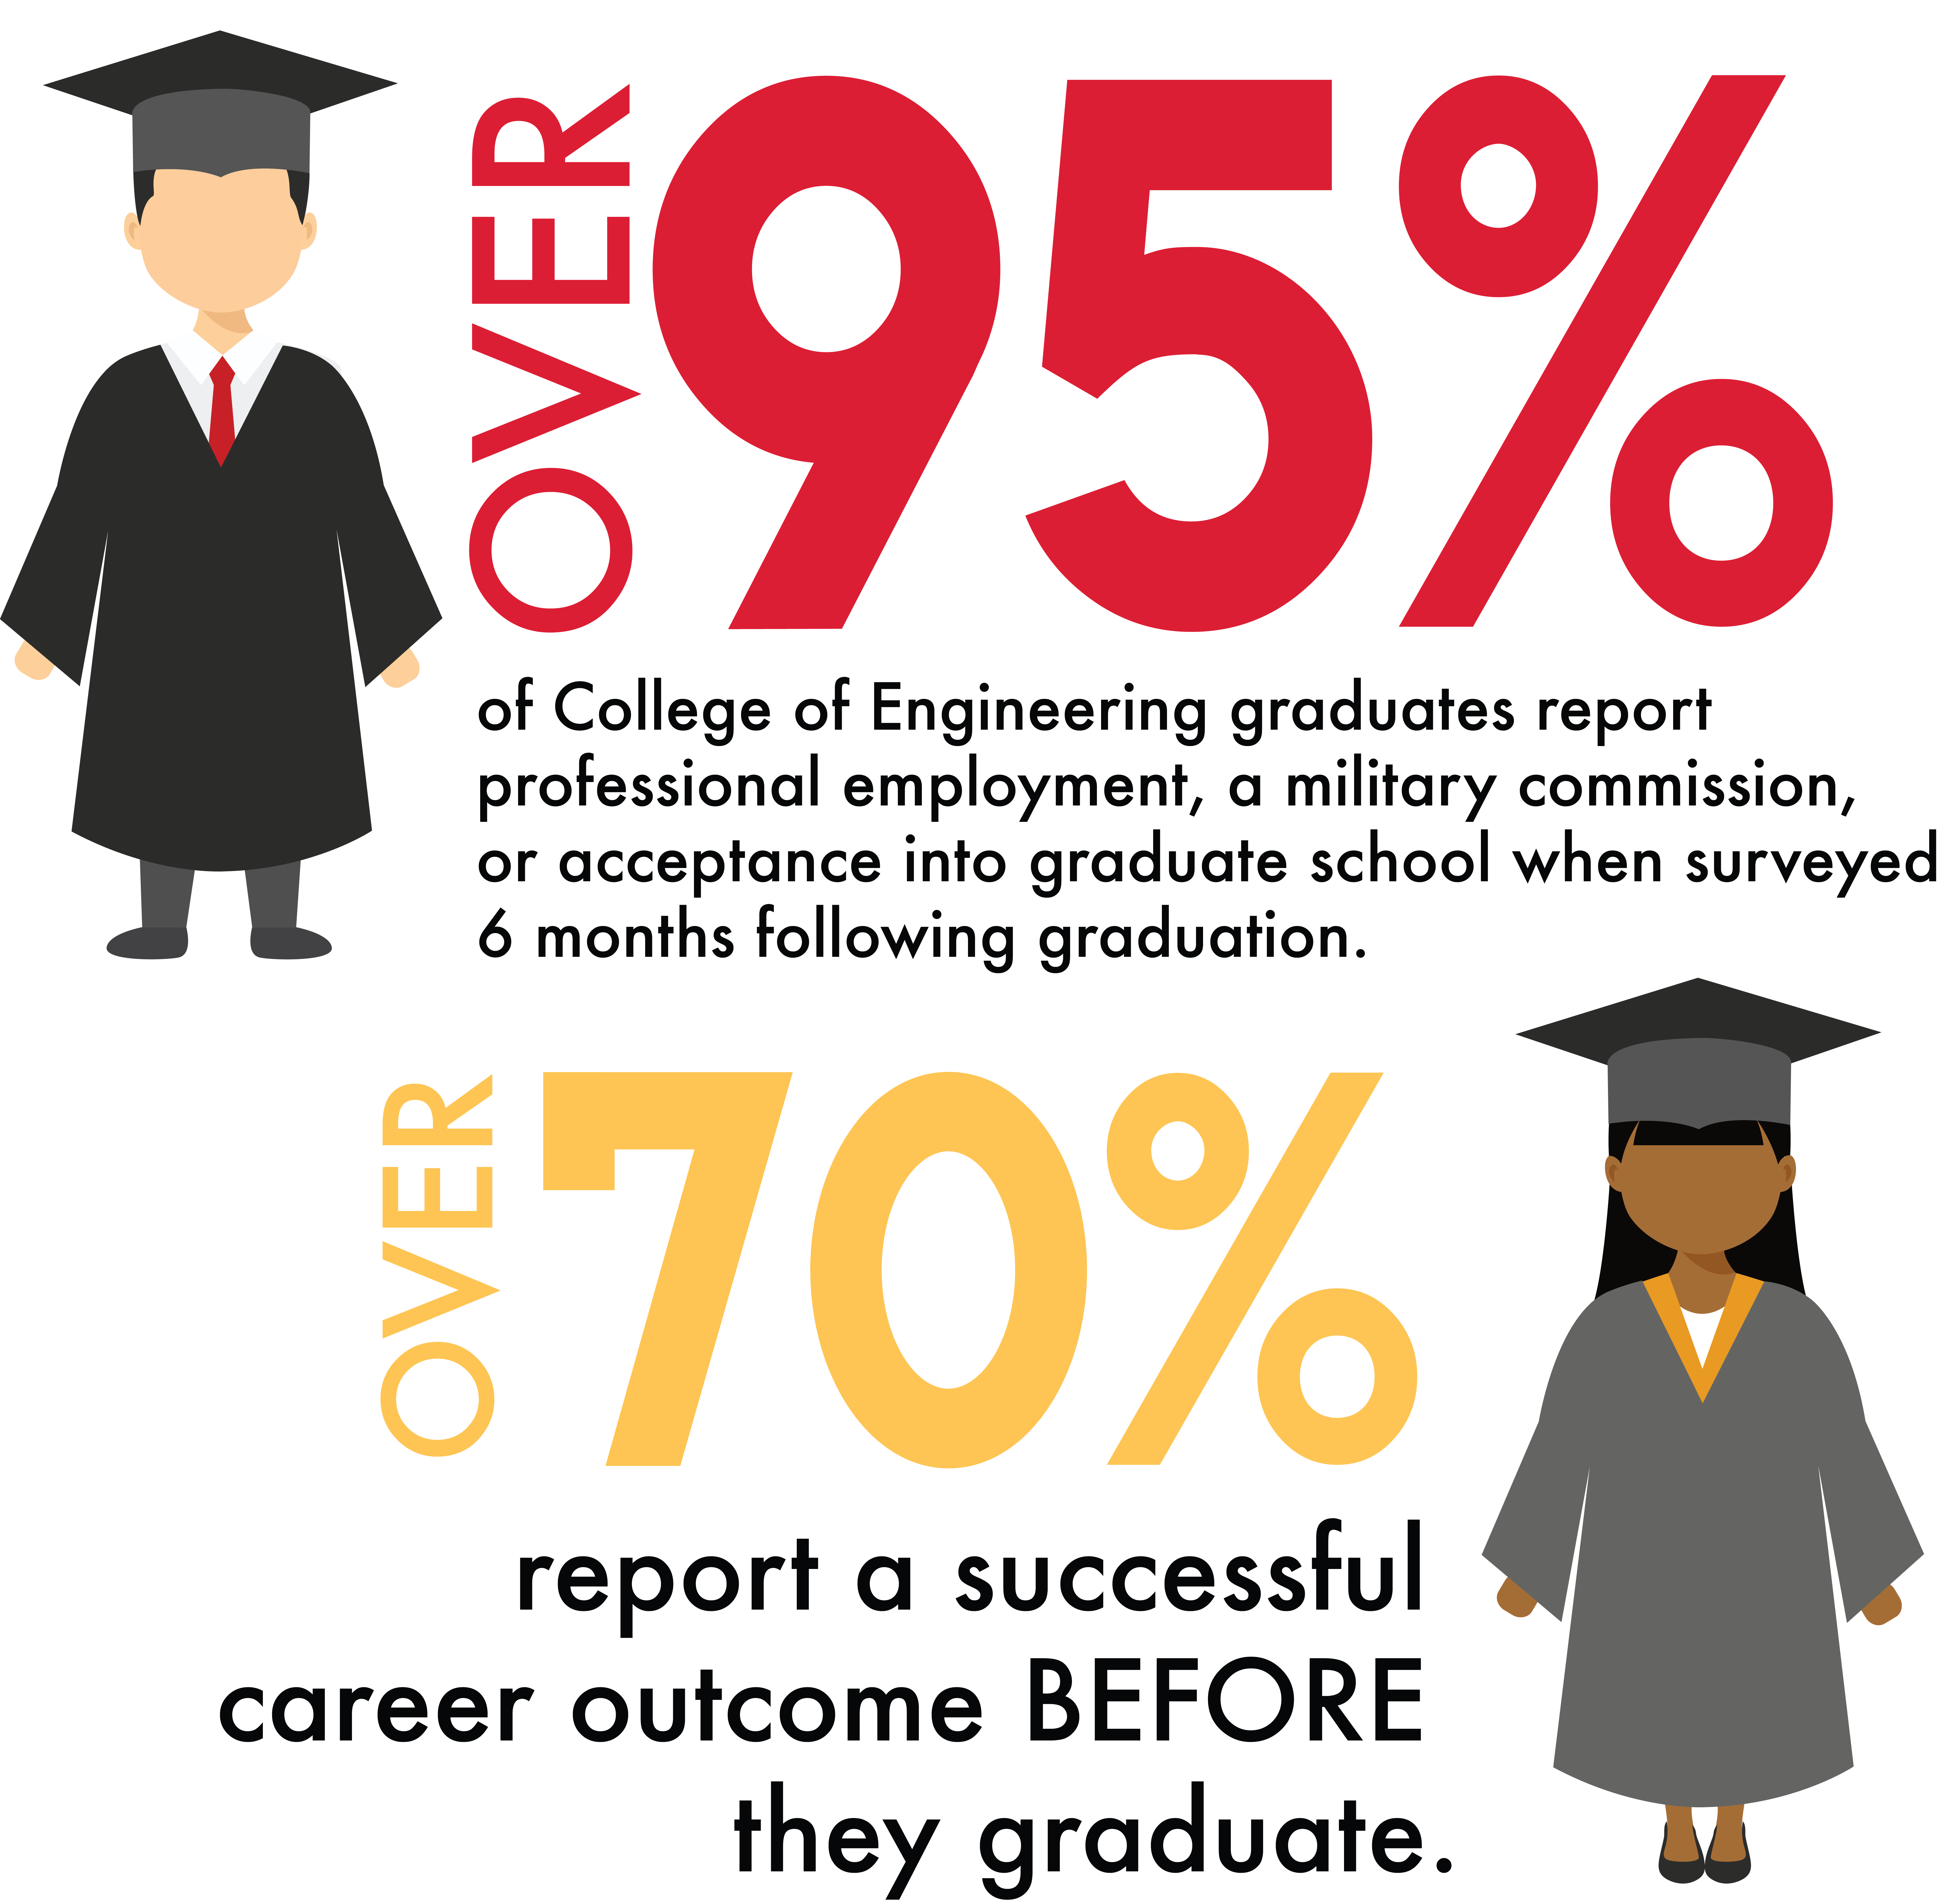 Graphic depicts two graduates. Over 95% of College of Engineering graduates report professional employment, a military commission, or acceptance into graduate school when surveyed 6 months following graduation. Over 70% report a successful career outcome BEFORE they graduate.